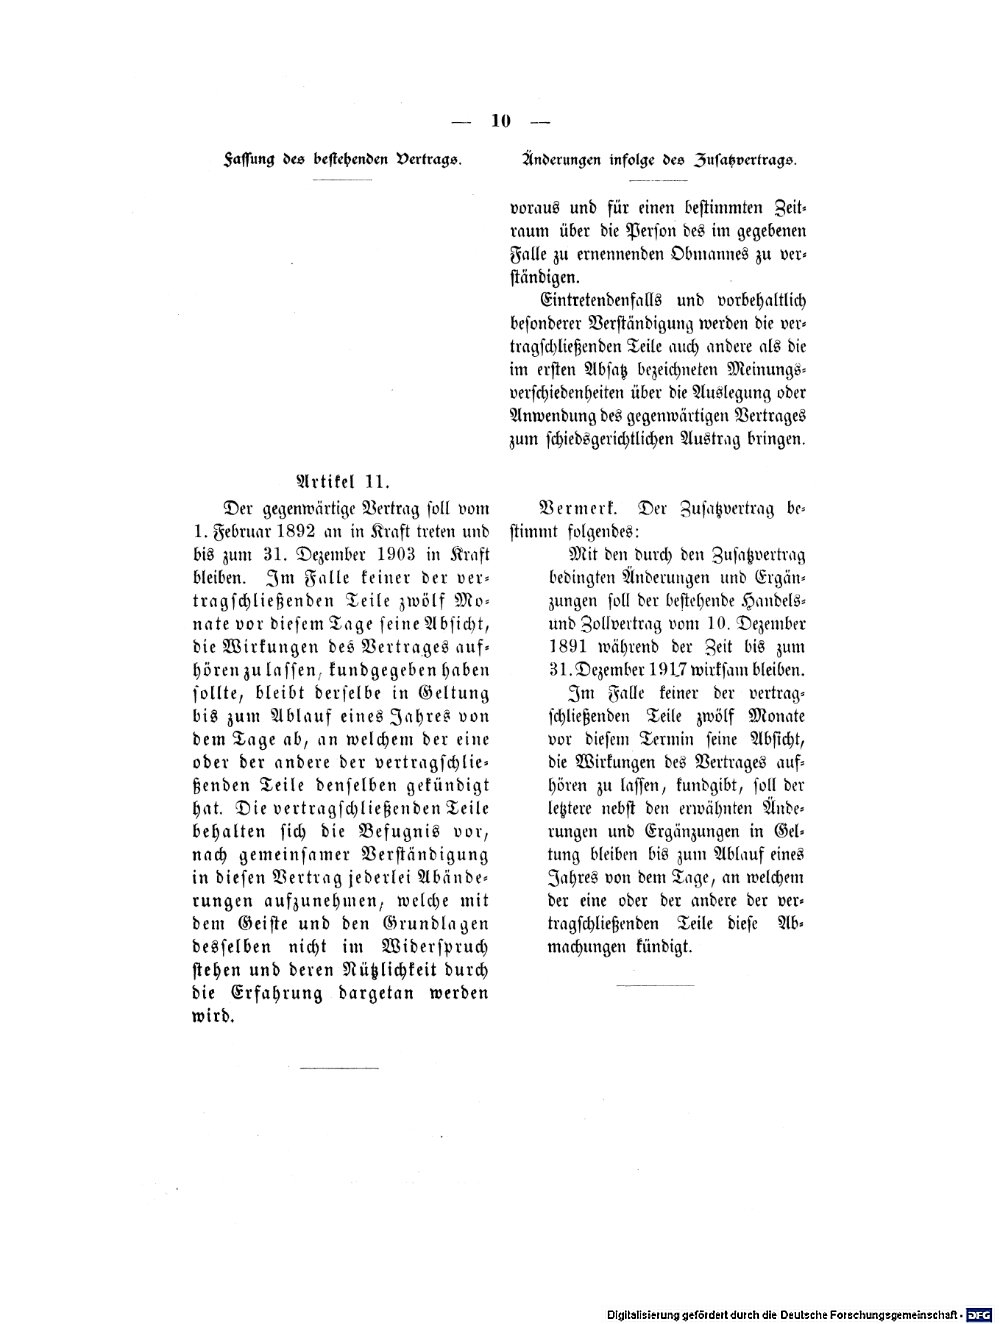 Scan of page 10